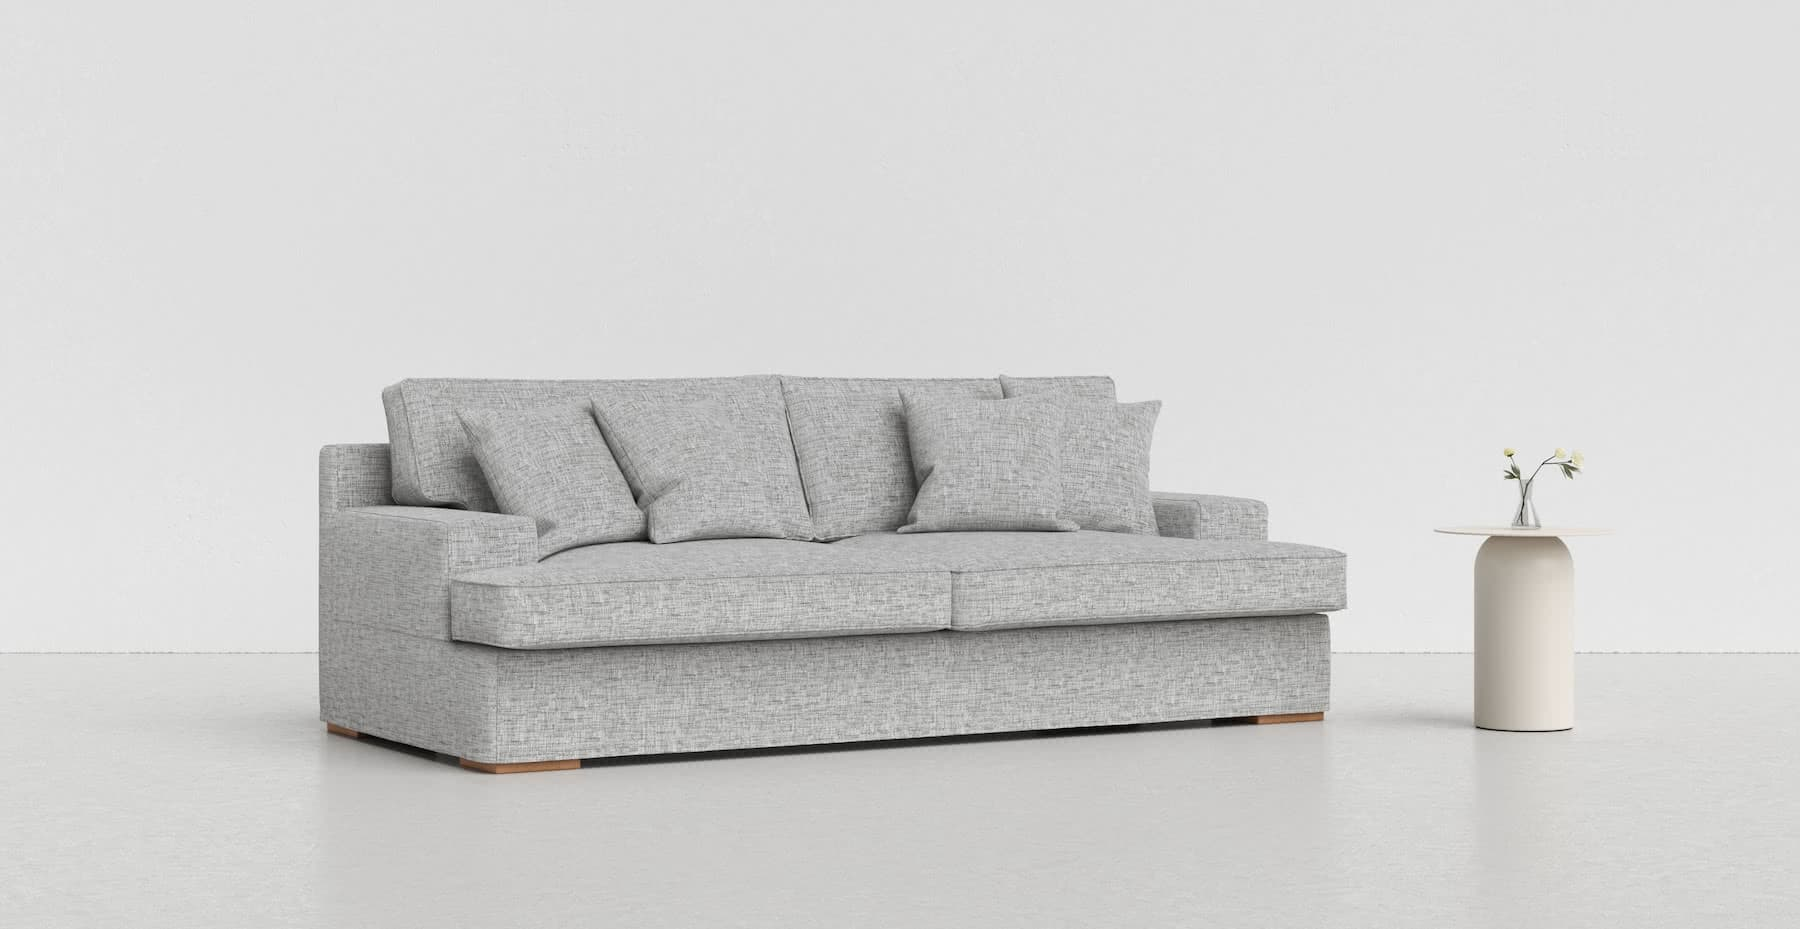 Replacement Sofa Covers For The Discontinued Ikea Goteborg